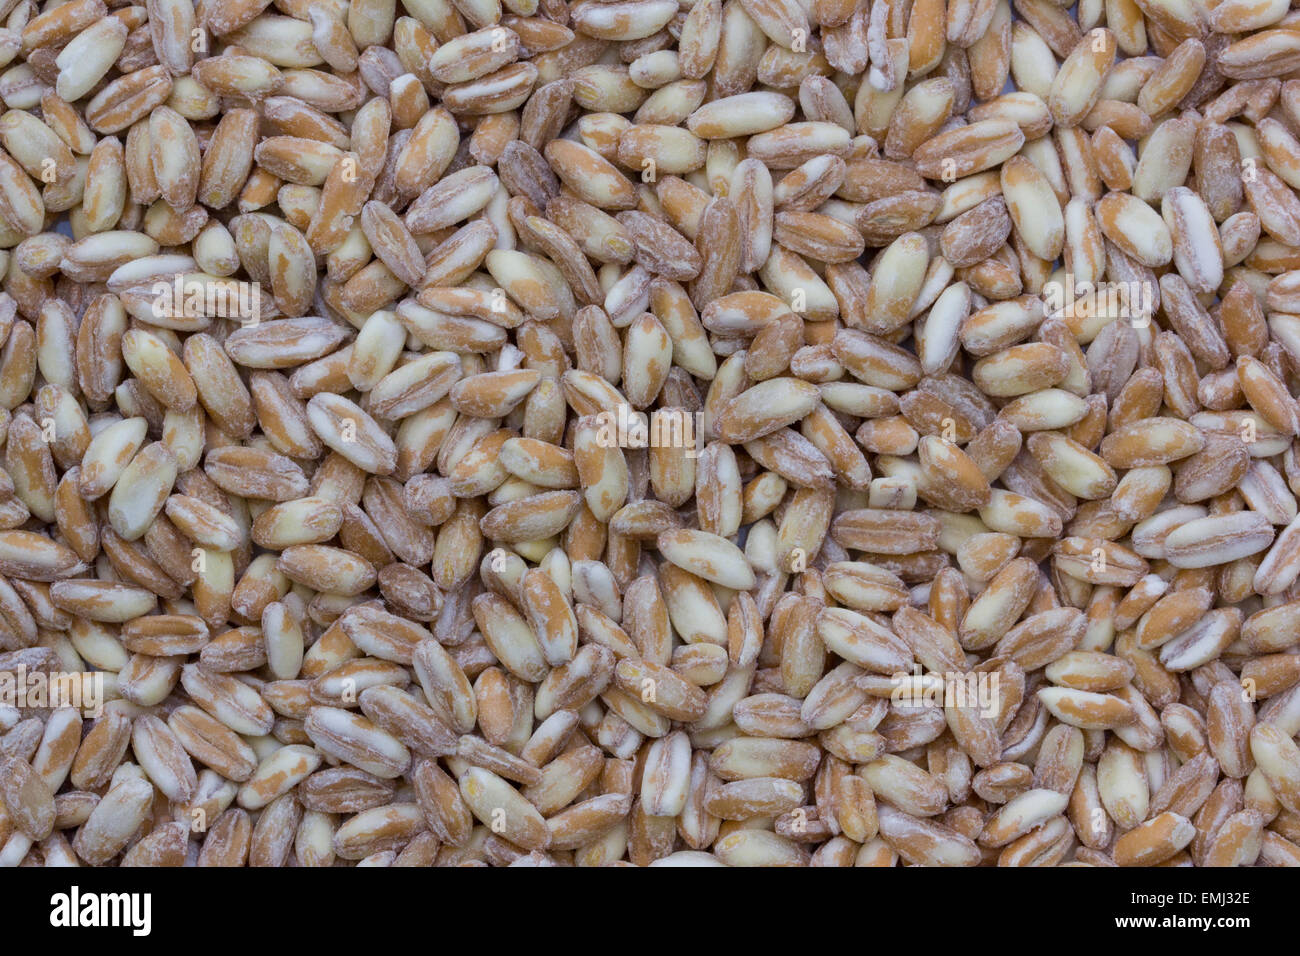 close up of pearl barley or pearled spelt stock photo